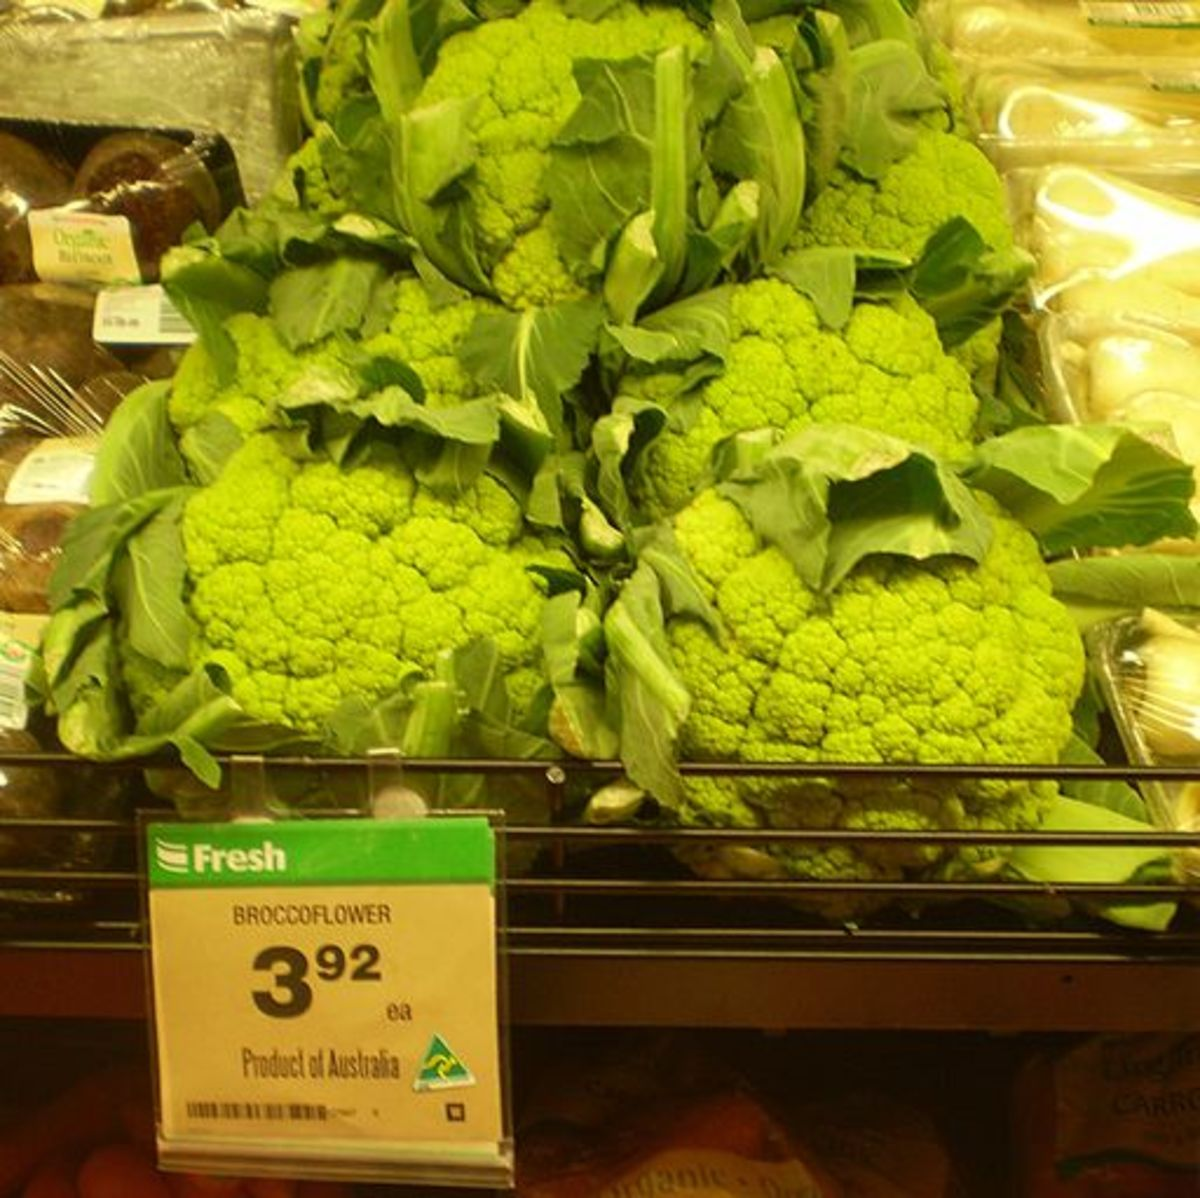 Broccoflower in Australian supermarket